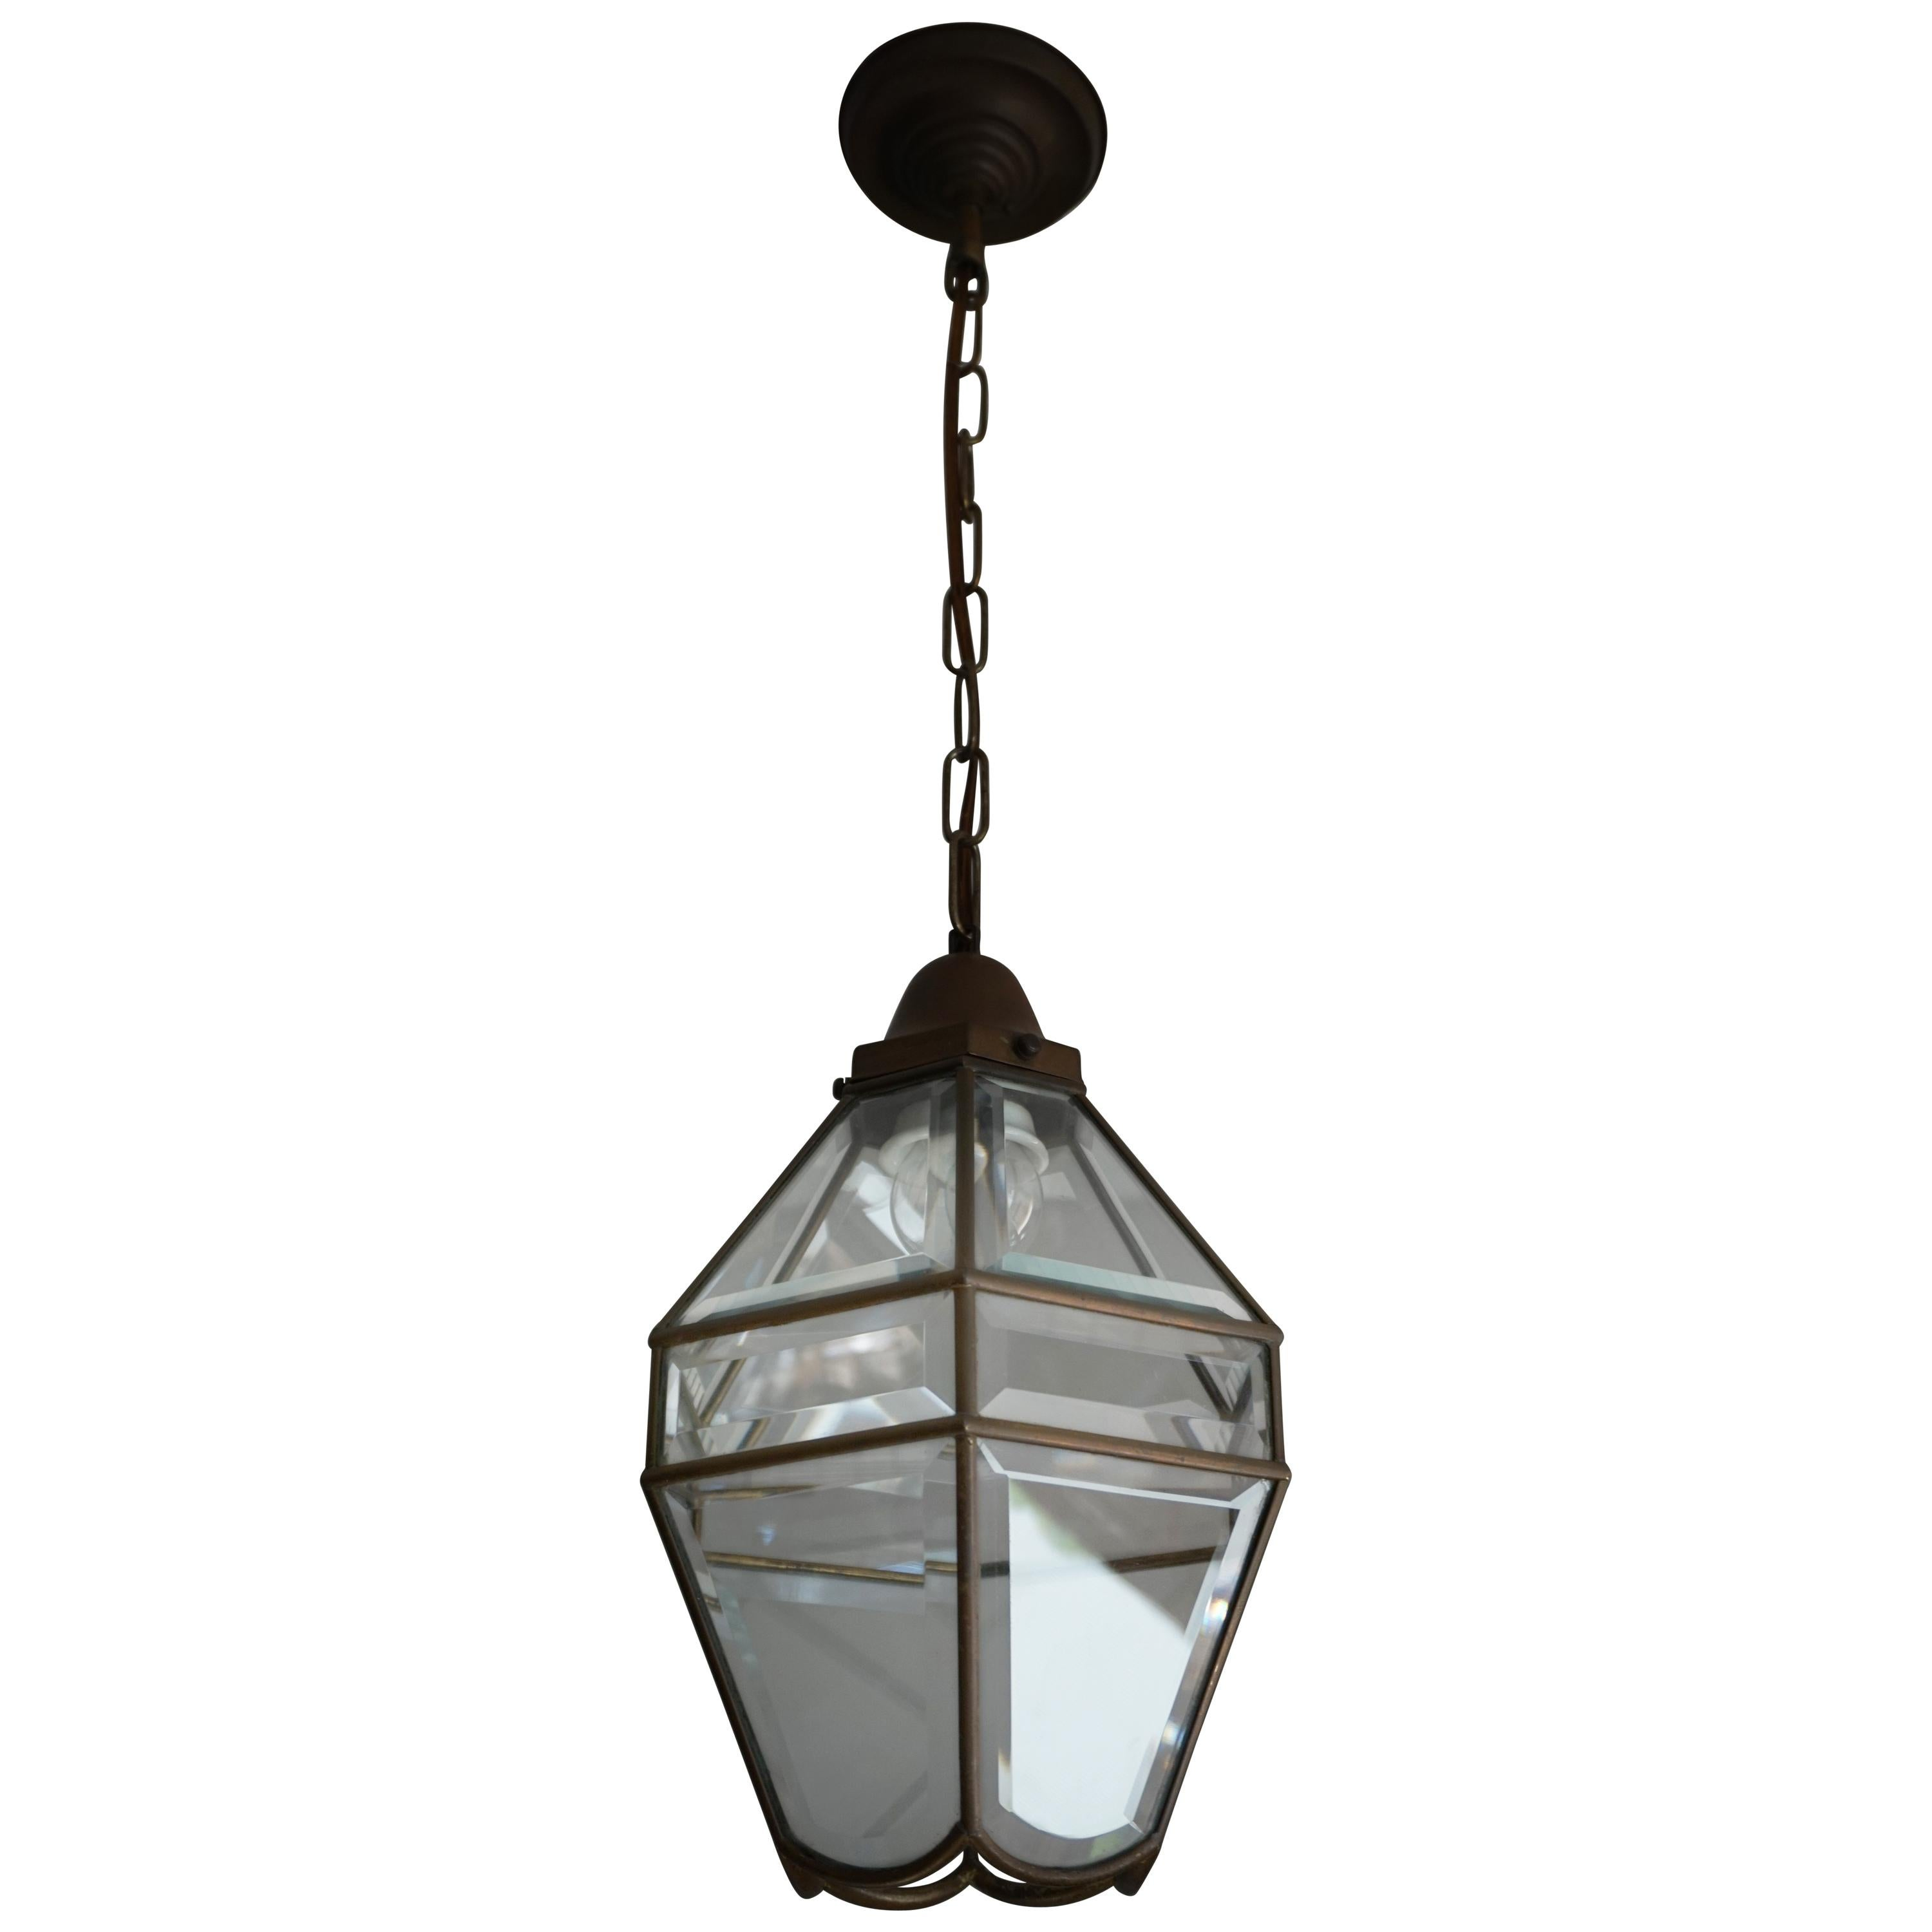 Arts Craft Style Ceiling Pendant Light